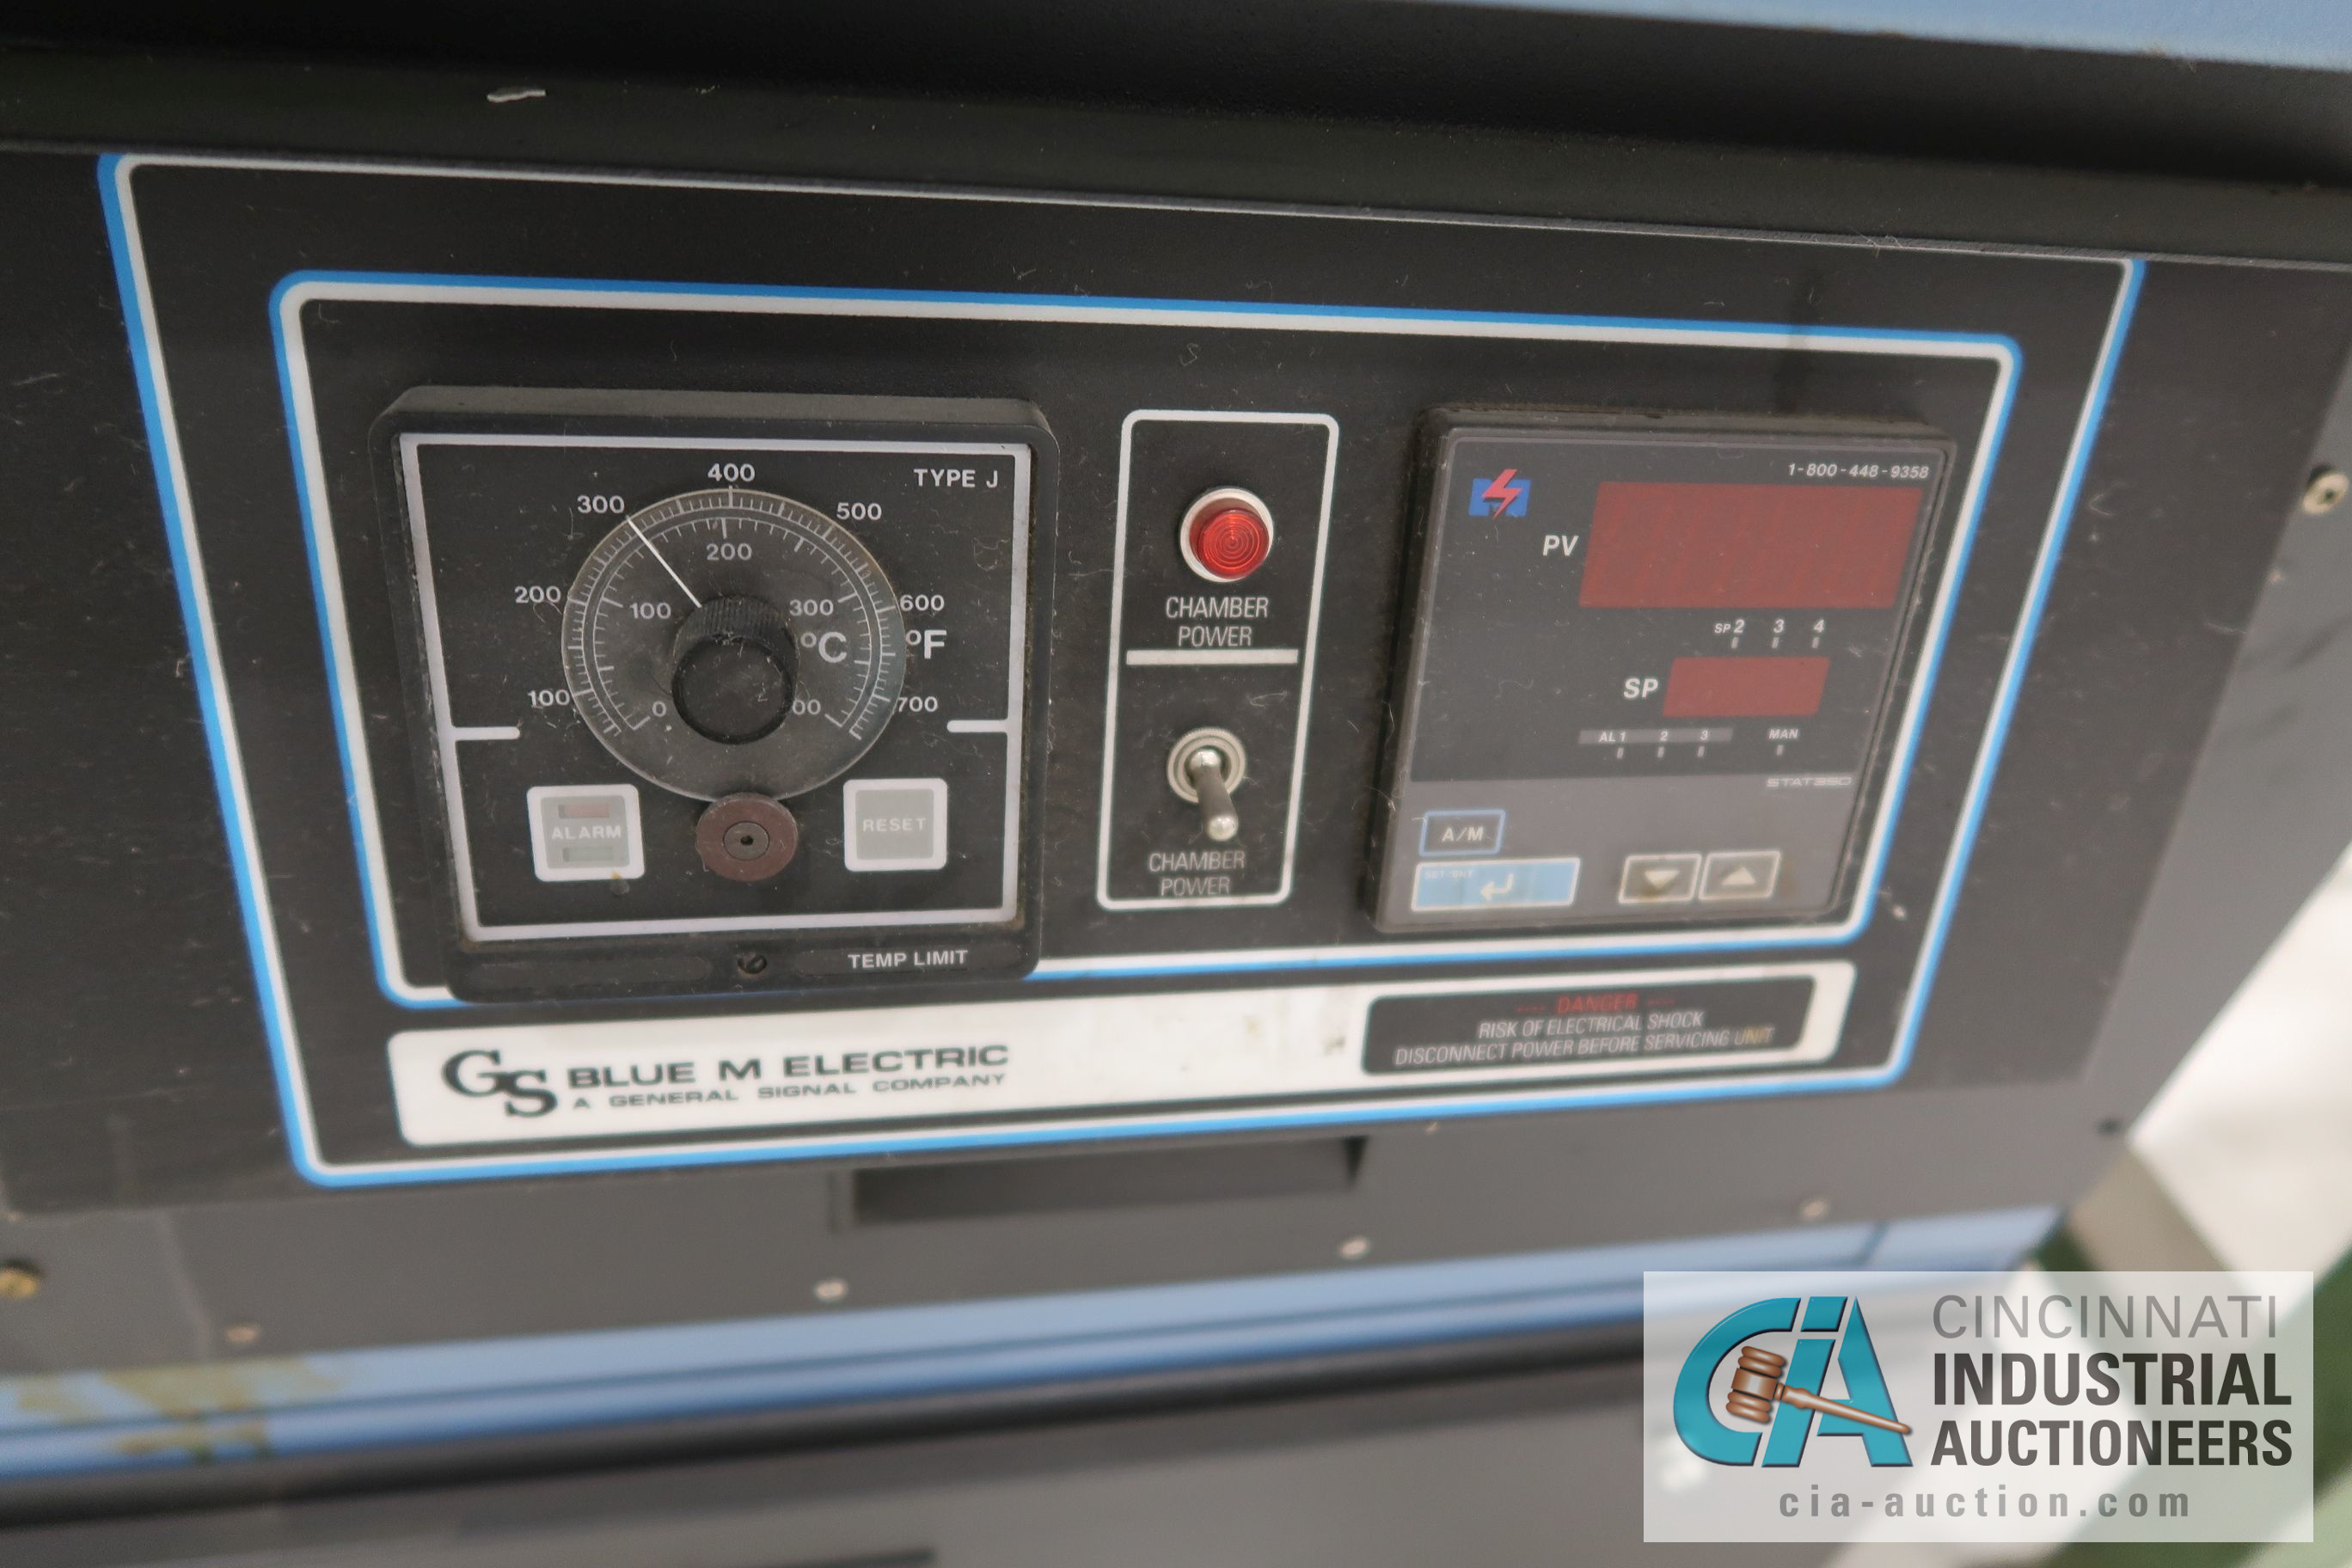 "20"" X 20"" X 20"" BLUE M MODEL CC-04W-M-G-HP ELECTRIC CONVECTION OVEN; S/N V30J-451910-WJ, 480 VOLT, - Image 2 of 4"